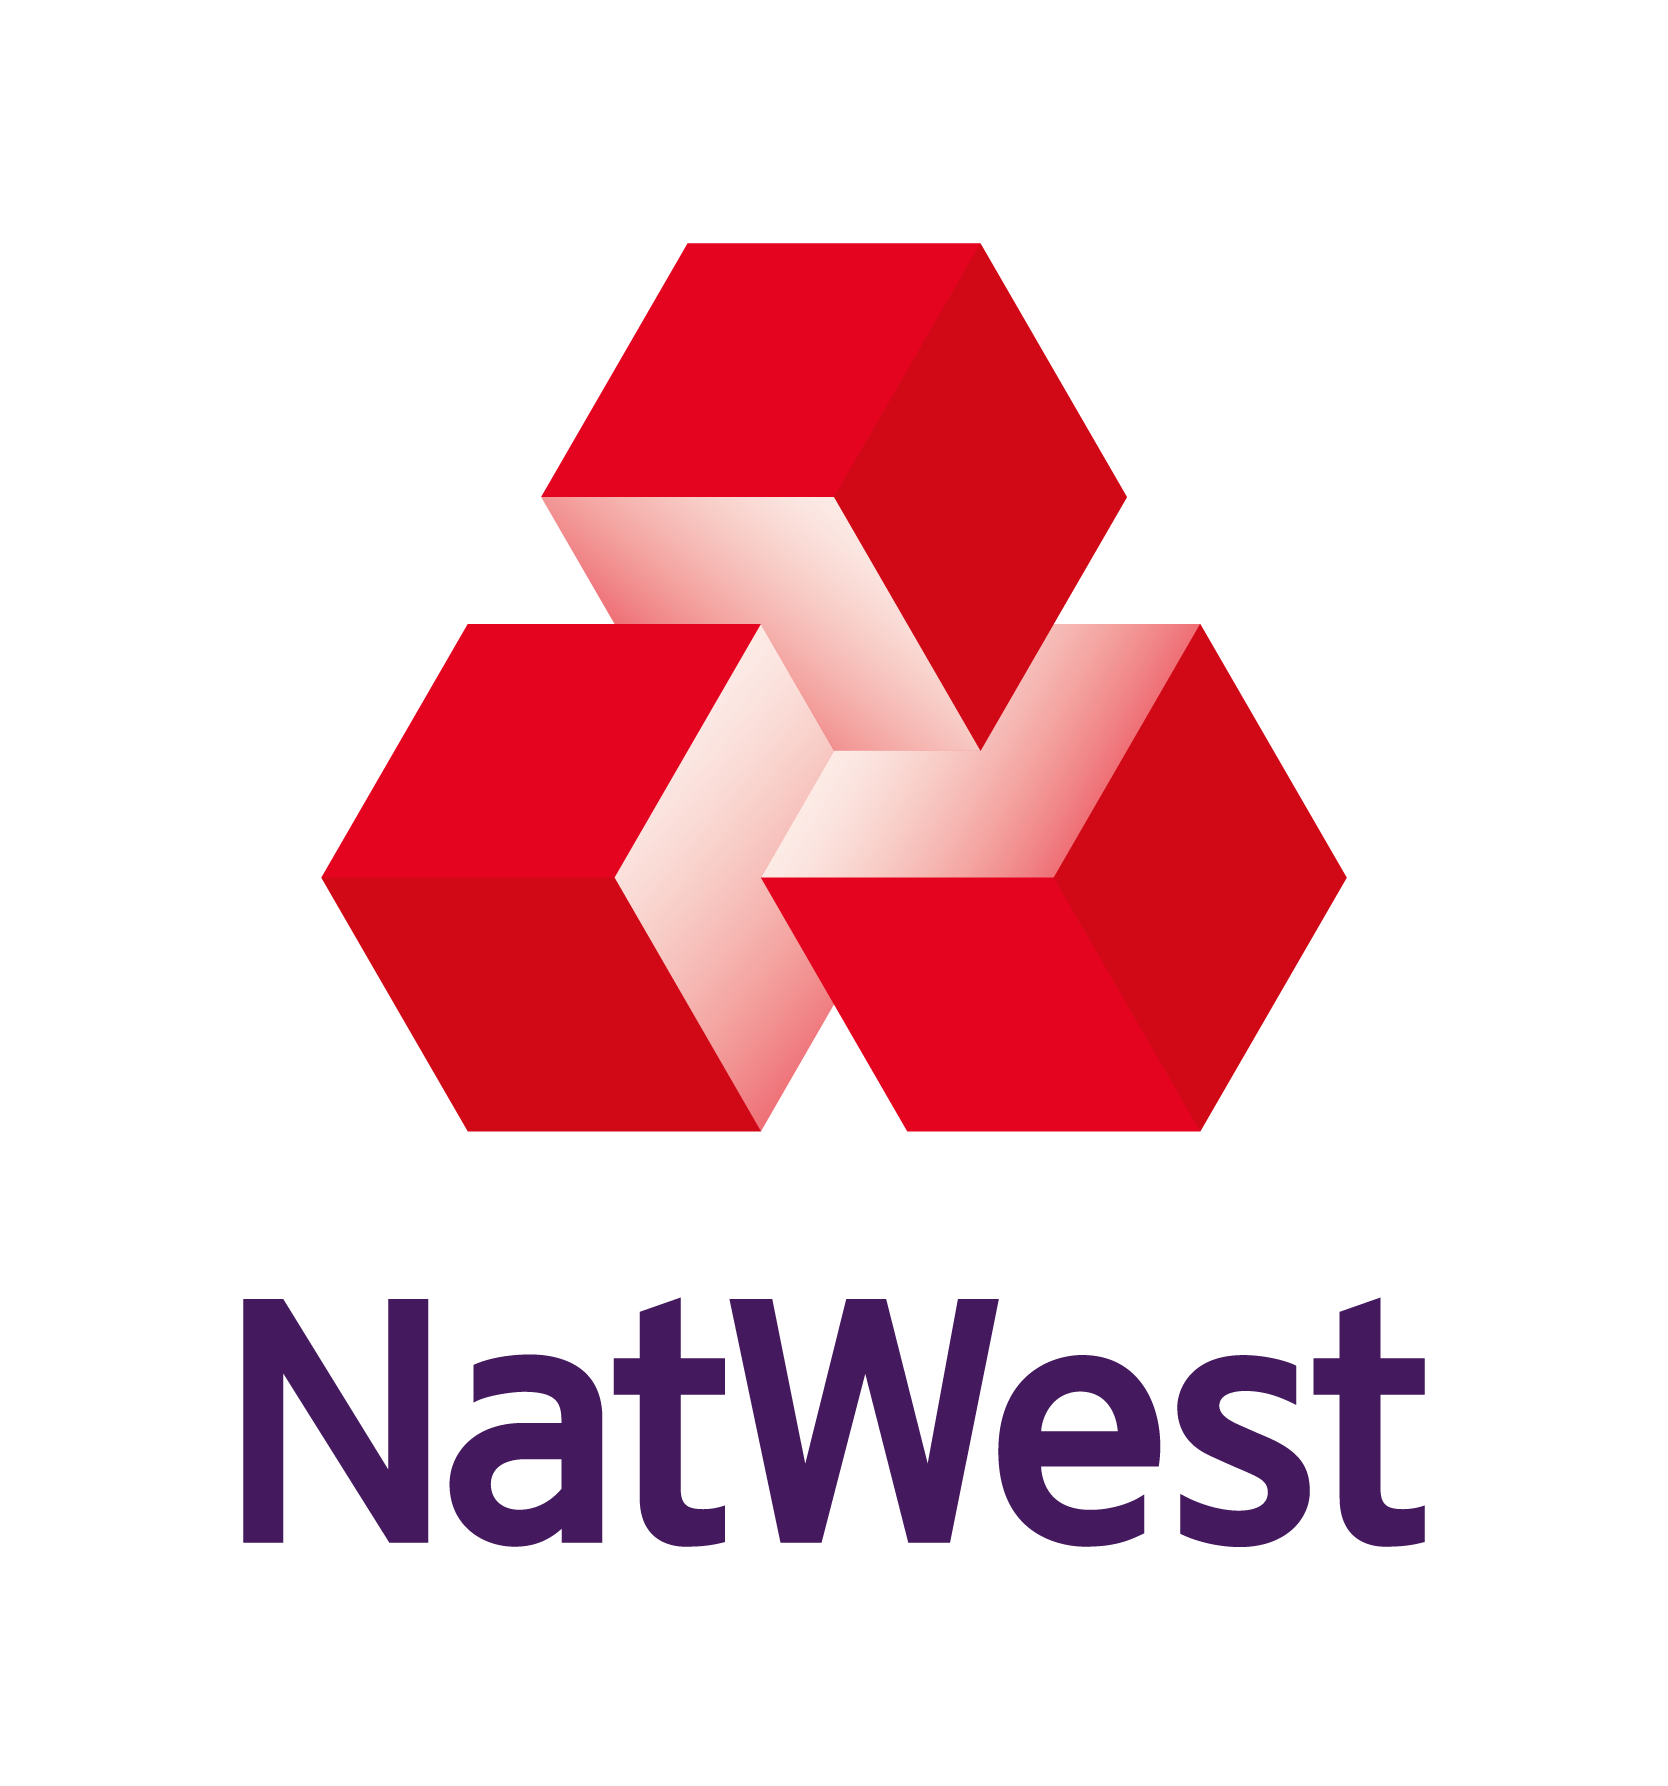 NatWest waives Point-of-sale terminal fees during Coronavirus crisis